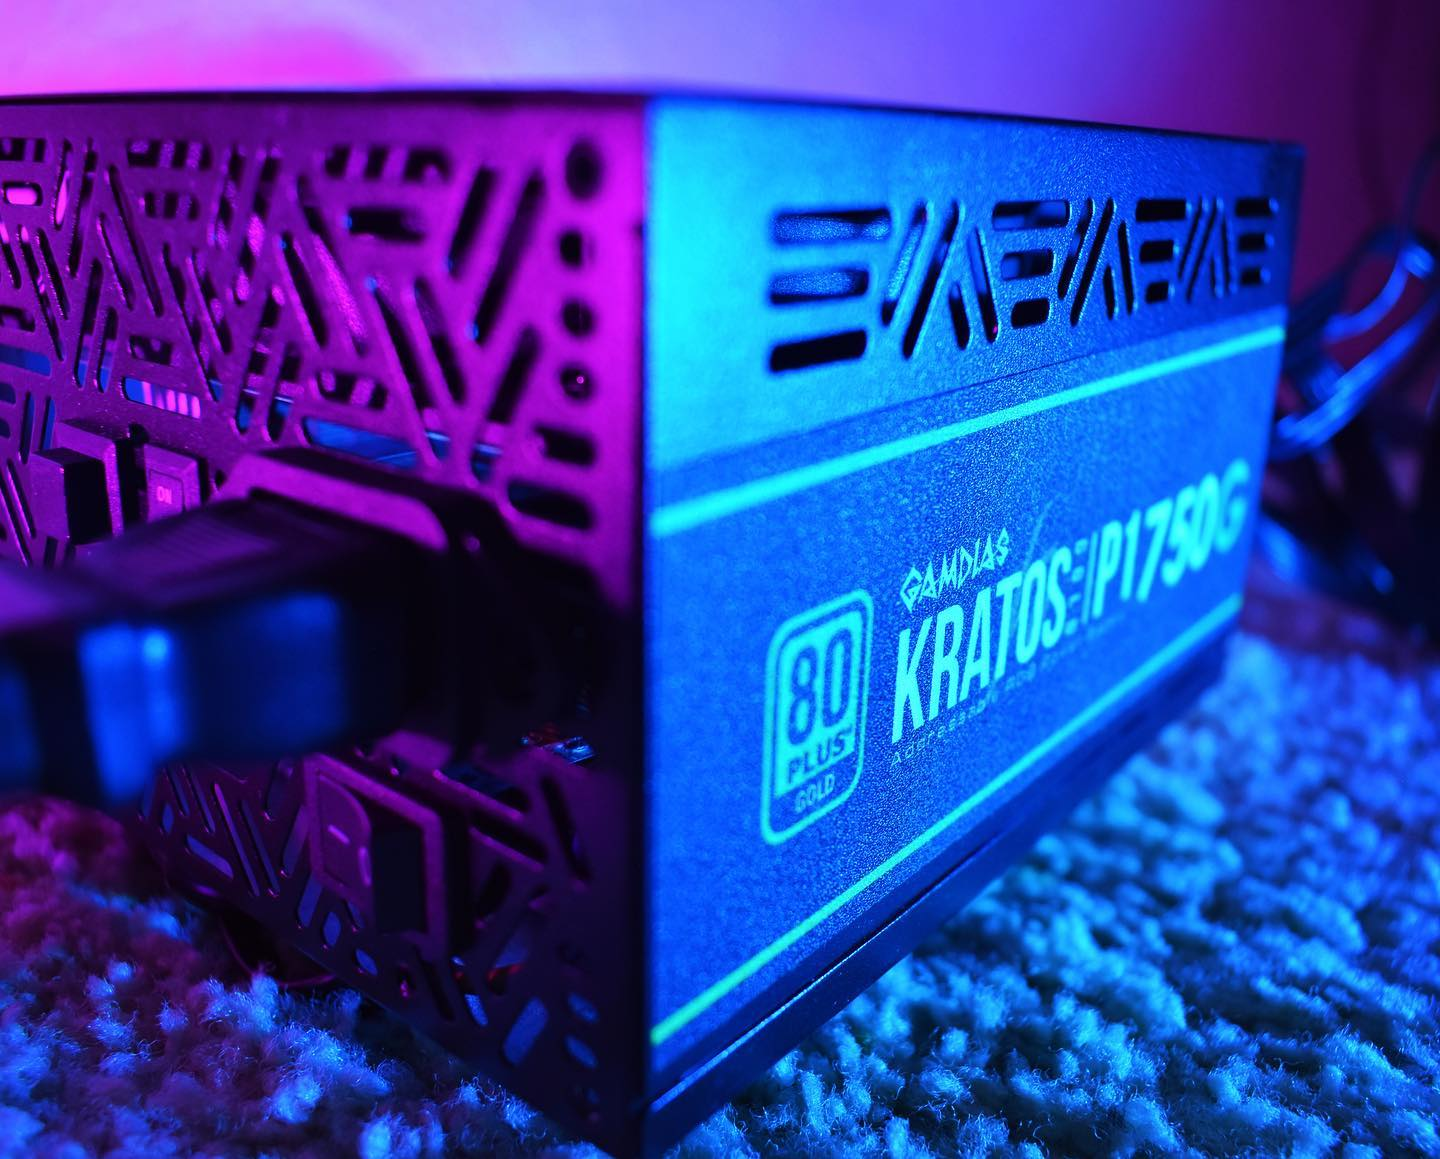 Power Up🔋Your PC with Assurance and Quality! KRATOS|P1 750G Power Supply Unit ~~~~~~~~~~~~~~~~~~~~~~~~~~...